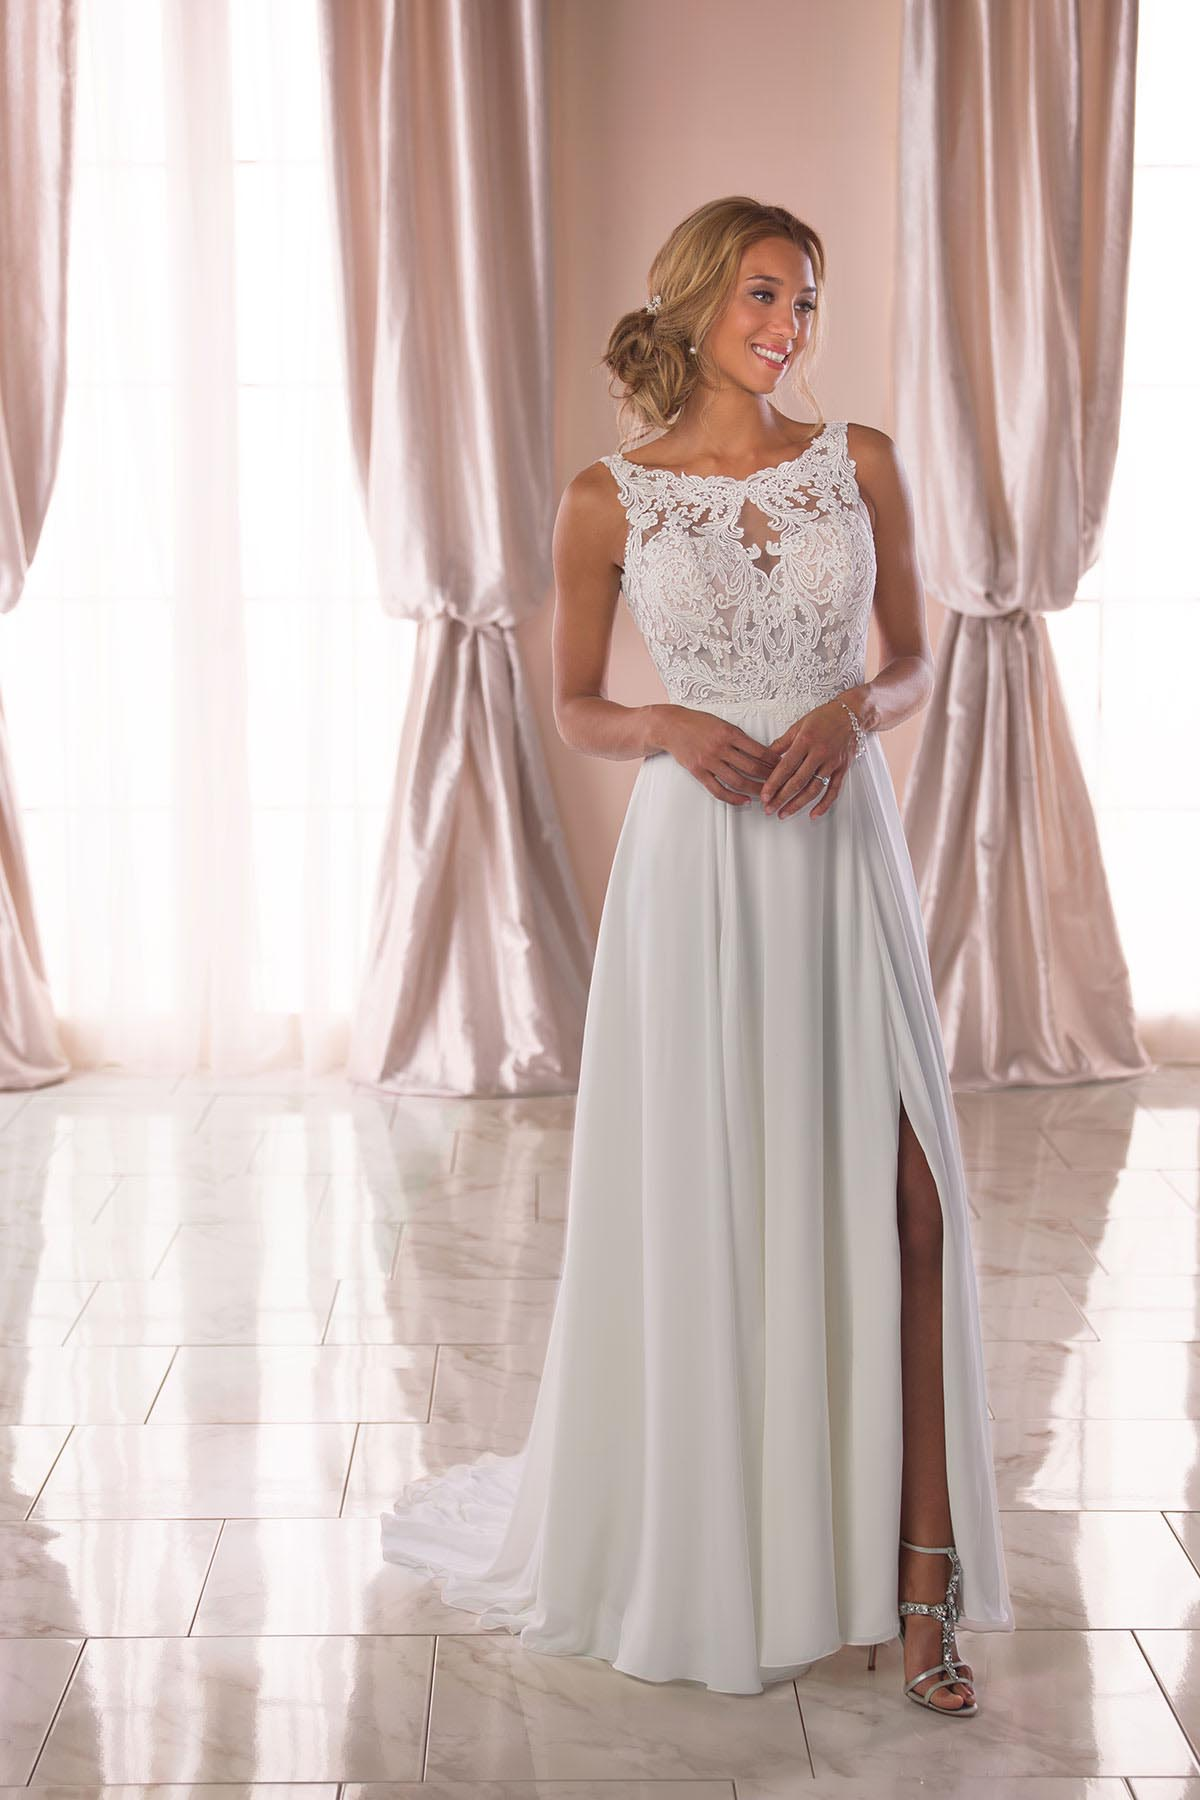 Bliss Bridal Salon Bridal Gowns Wedding Dresses Fort Worth